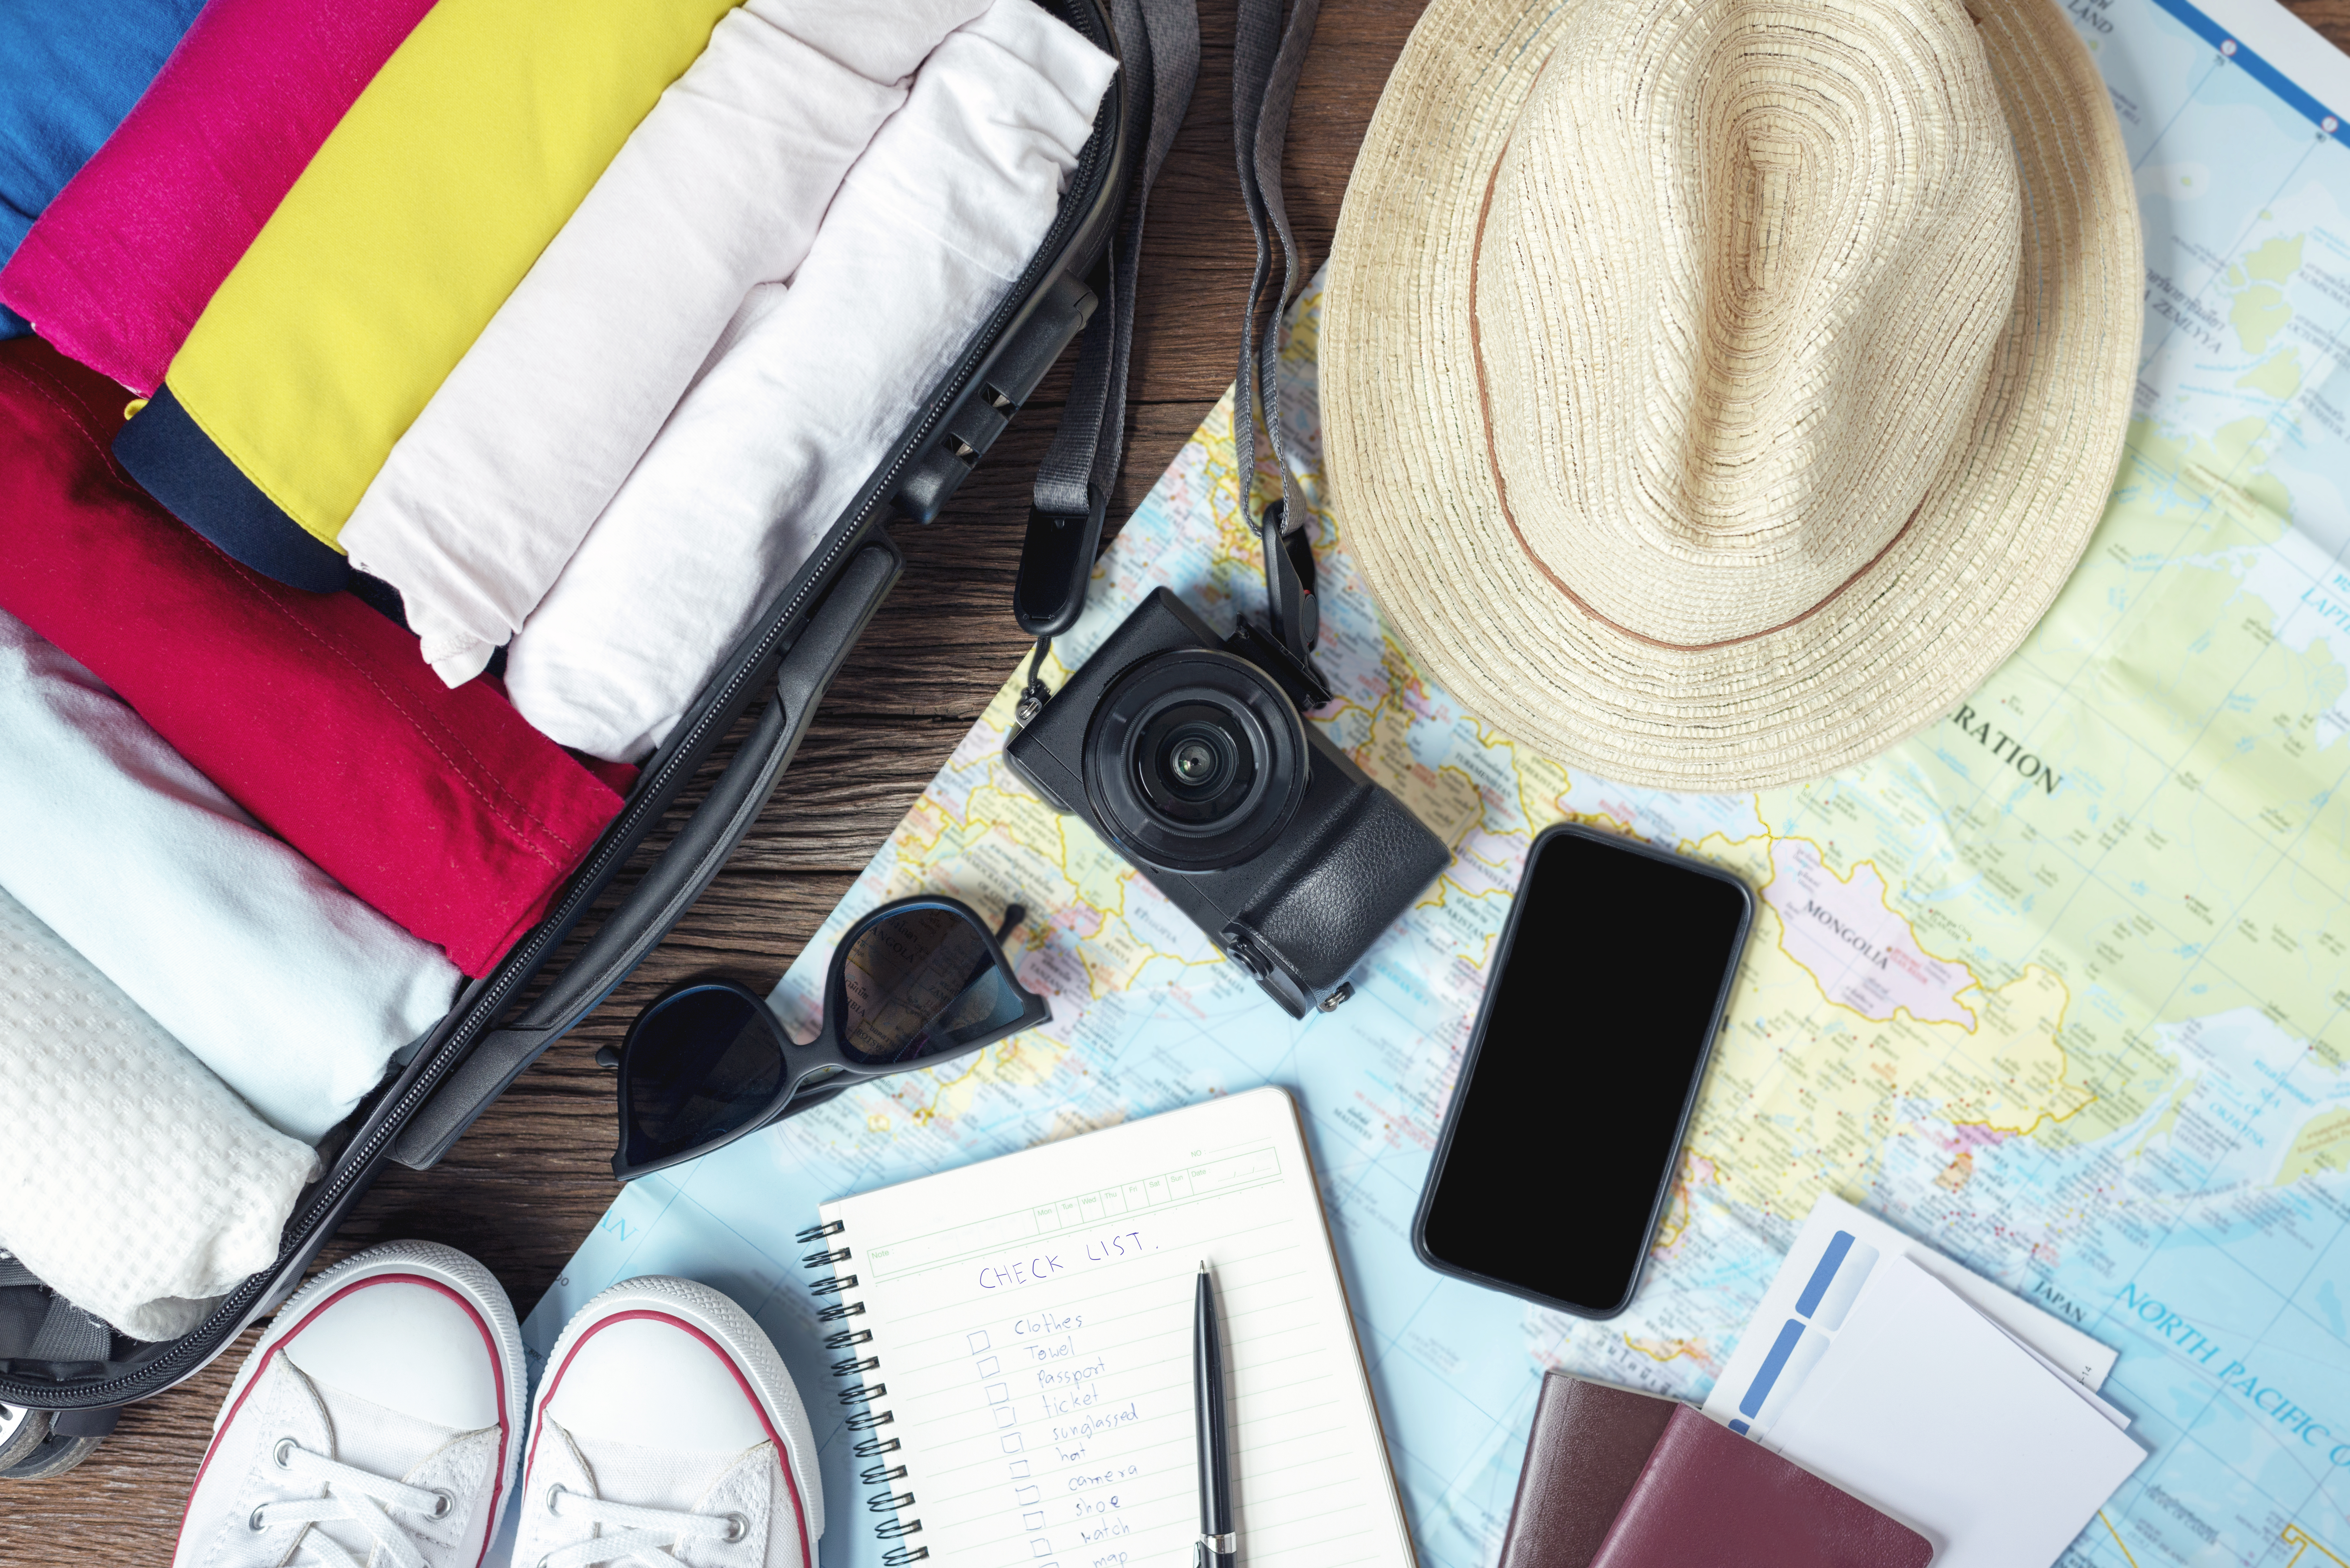 prepare-accessories-and-travel-items-for-new-journey-packing-clothes-in-suitcase-bag-on-wooden-board.jpg